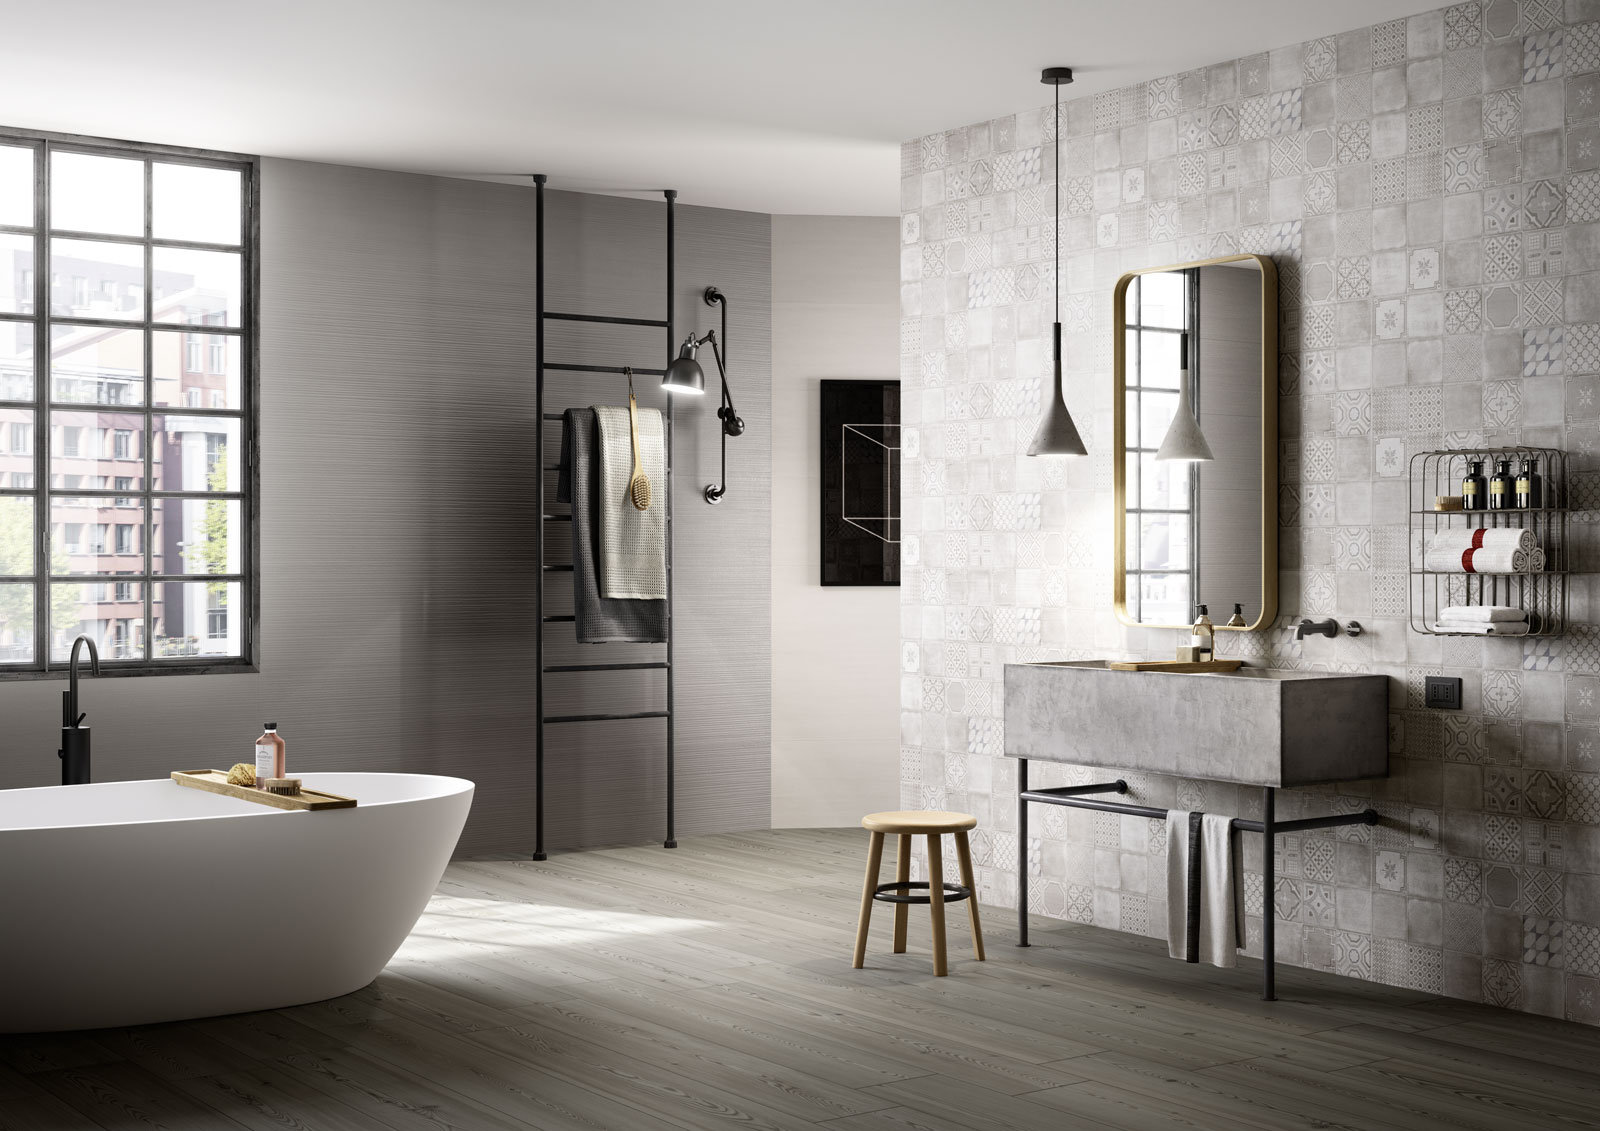 Mosaik Fliesen Dusche Pflege : Marazzi Porcelain Tile in Bathrooms